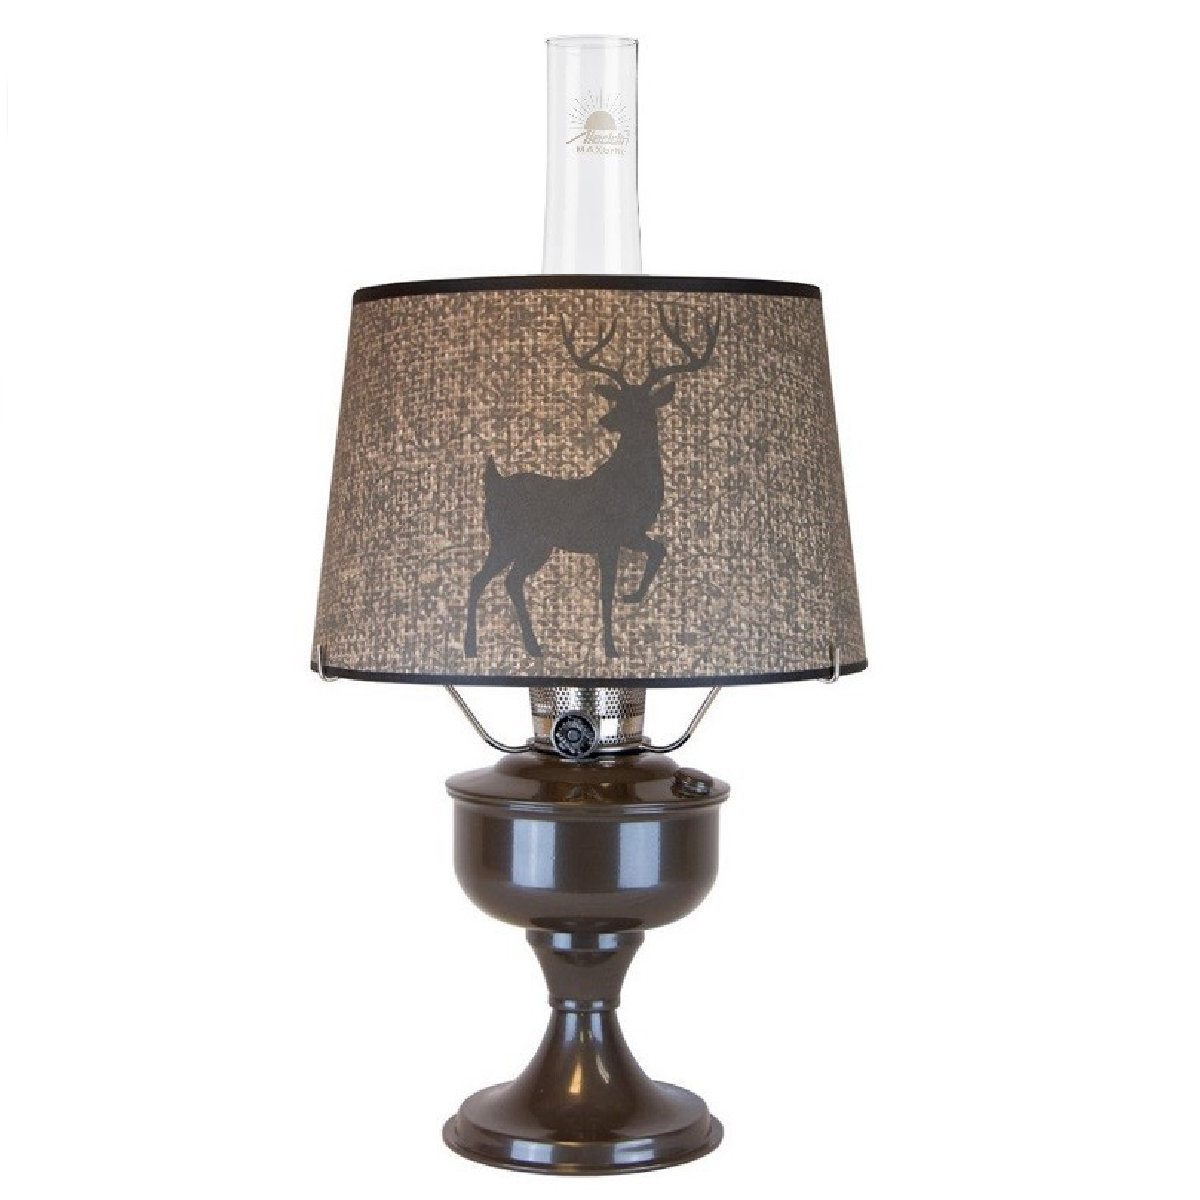 Aladdin Lamp Sepia Brown Aluminum Table Lamp With Woodland Royalty